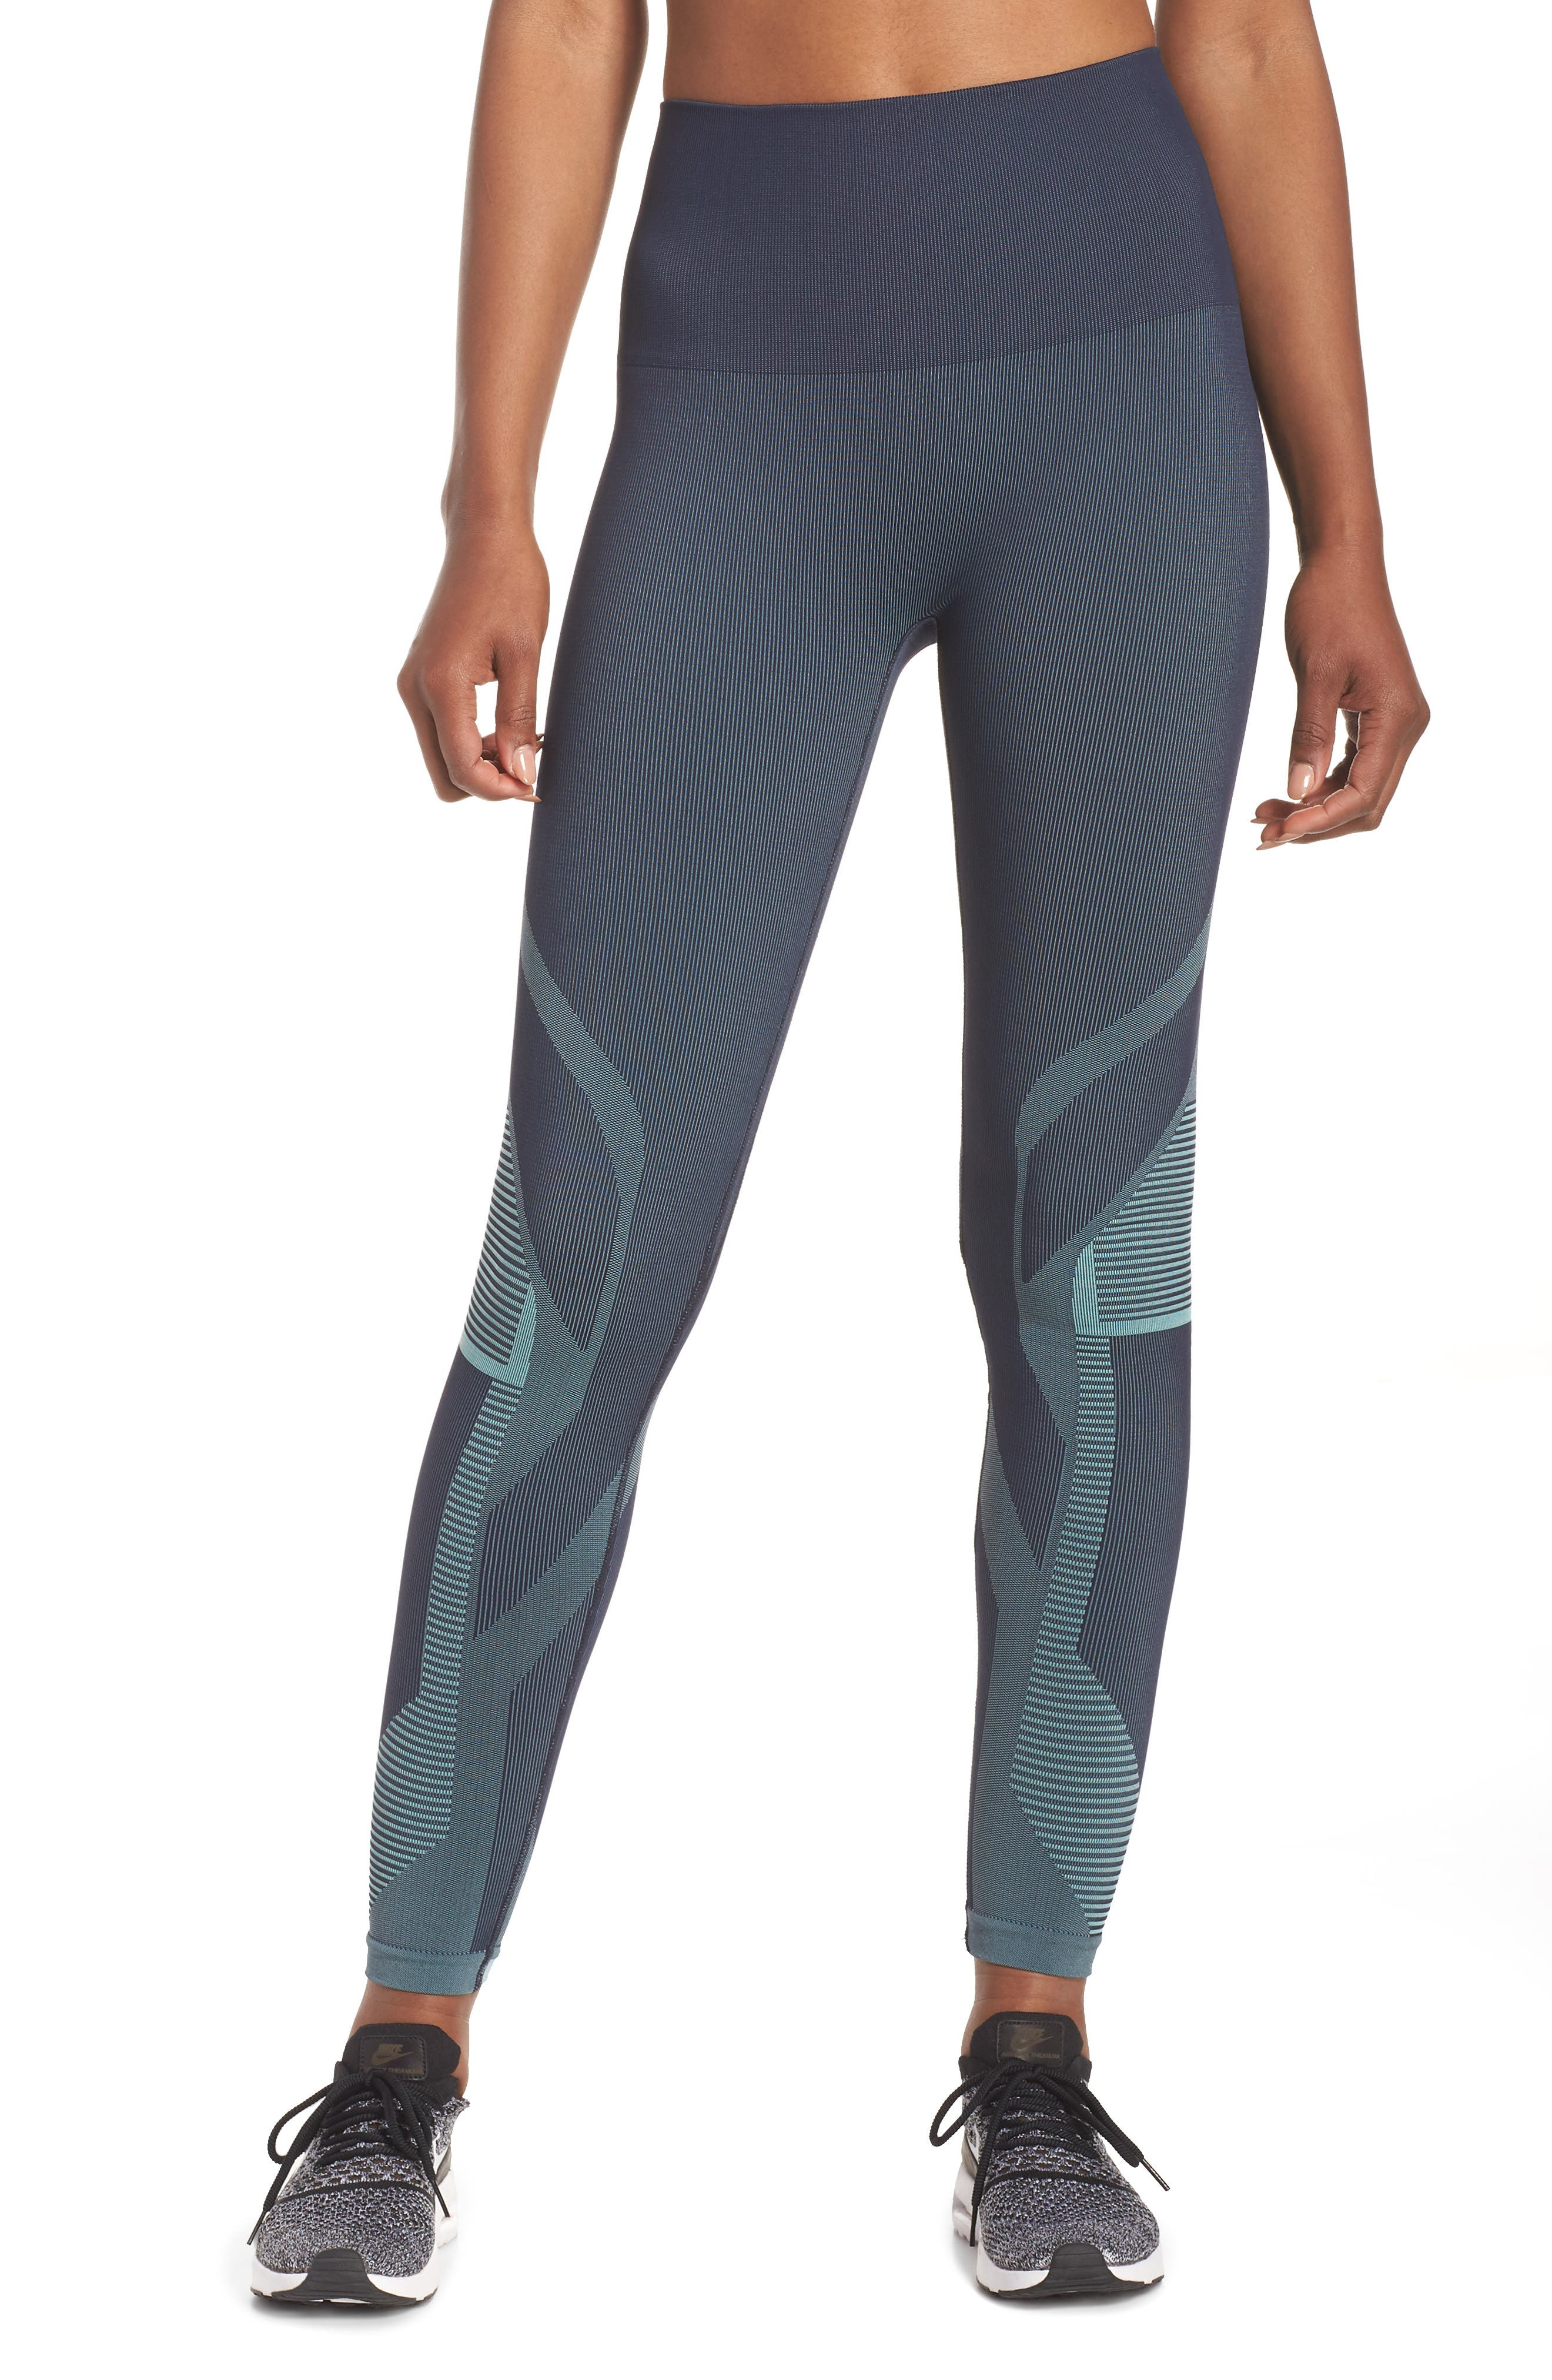 Spectrum High Waist Seamless Leggings,                             Main thumbnail 1, color,                             Deep Sea Navy